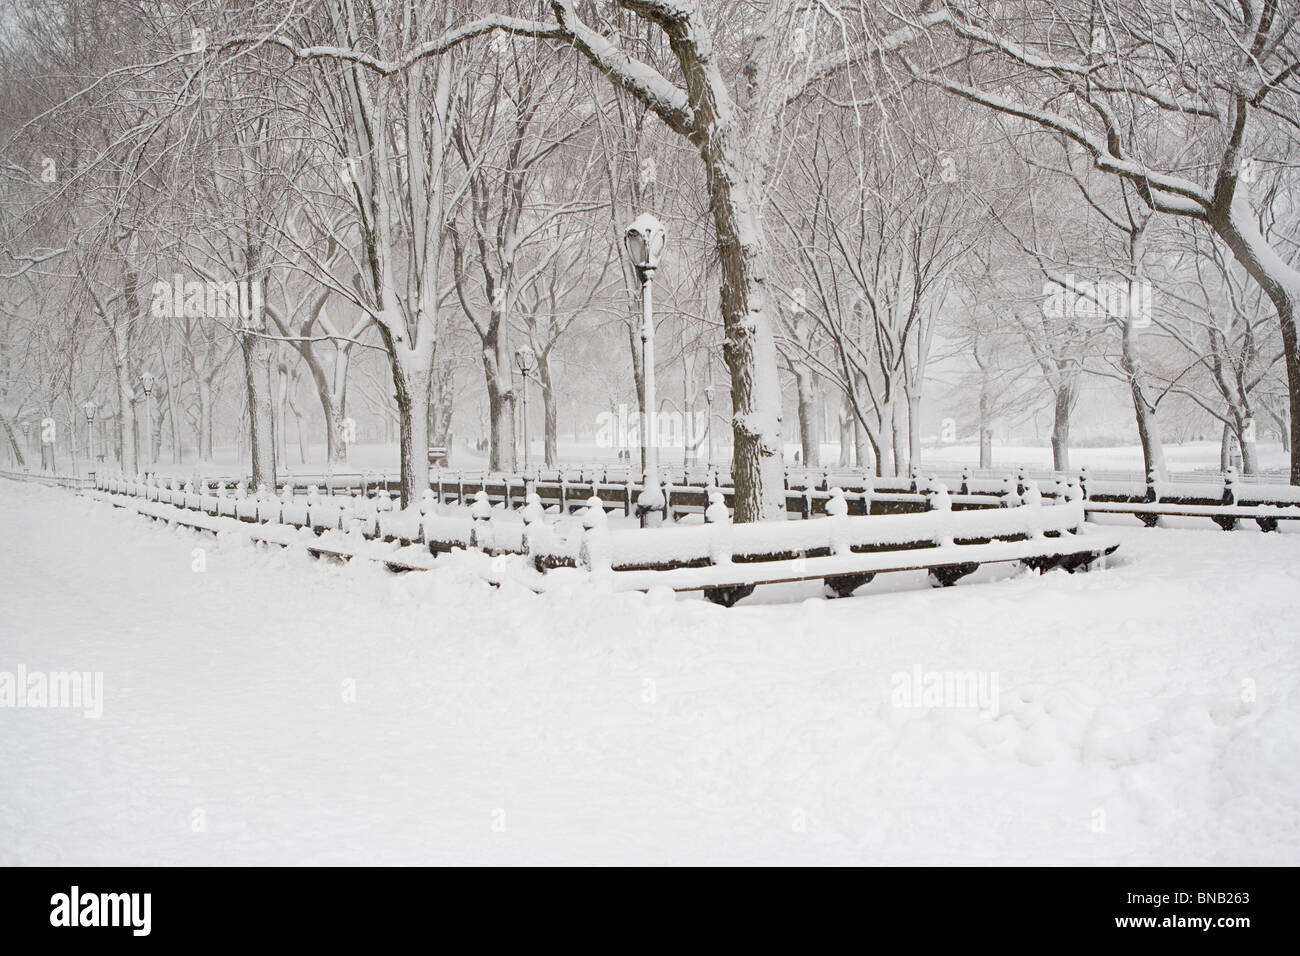 Park covered in snow - Stock Image